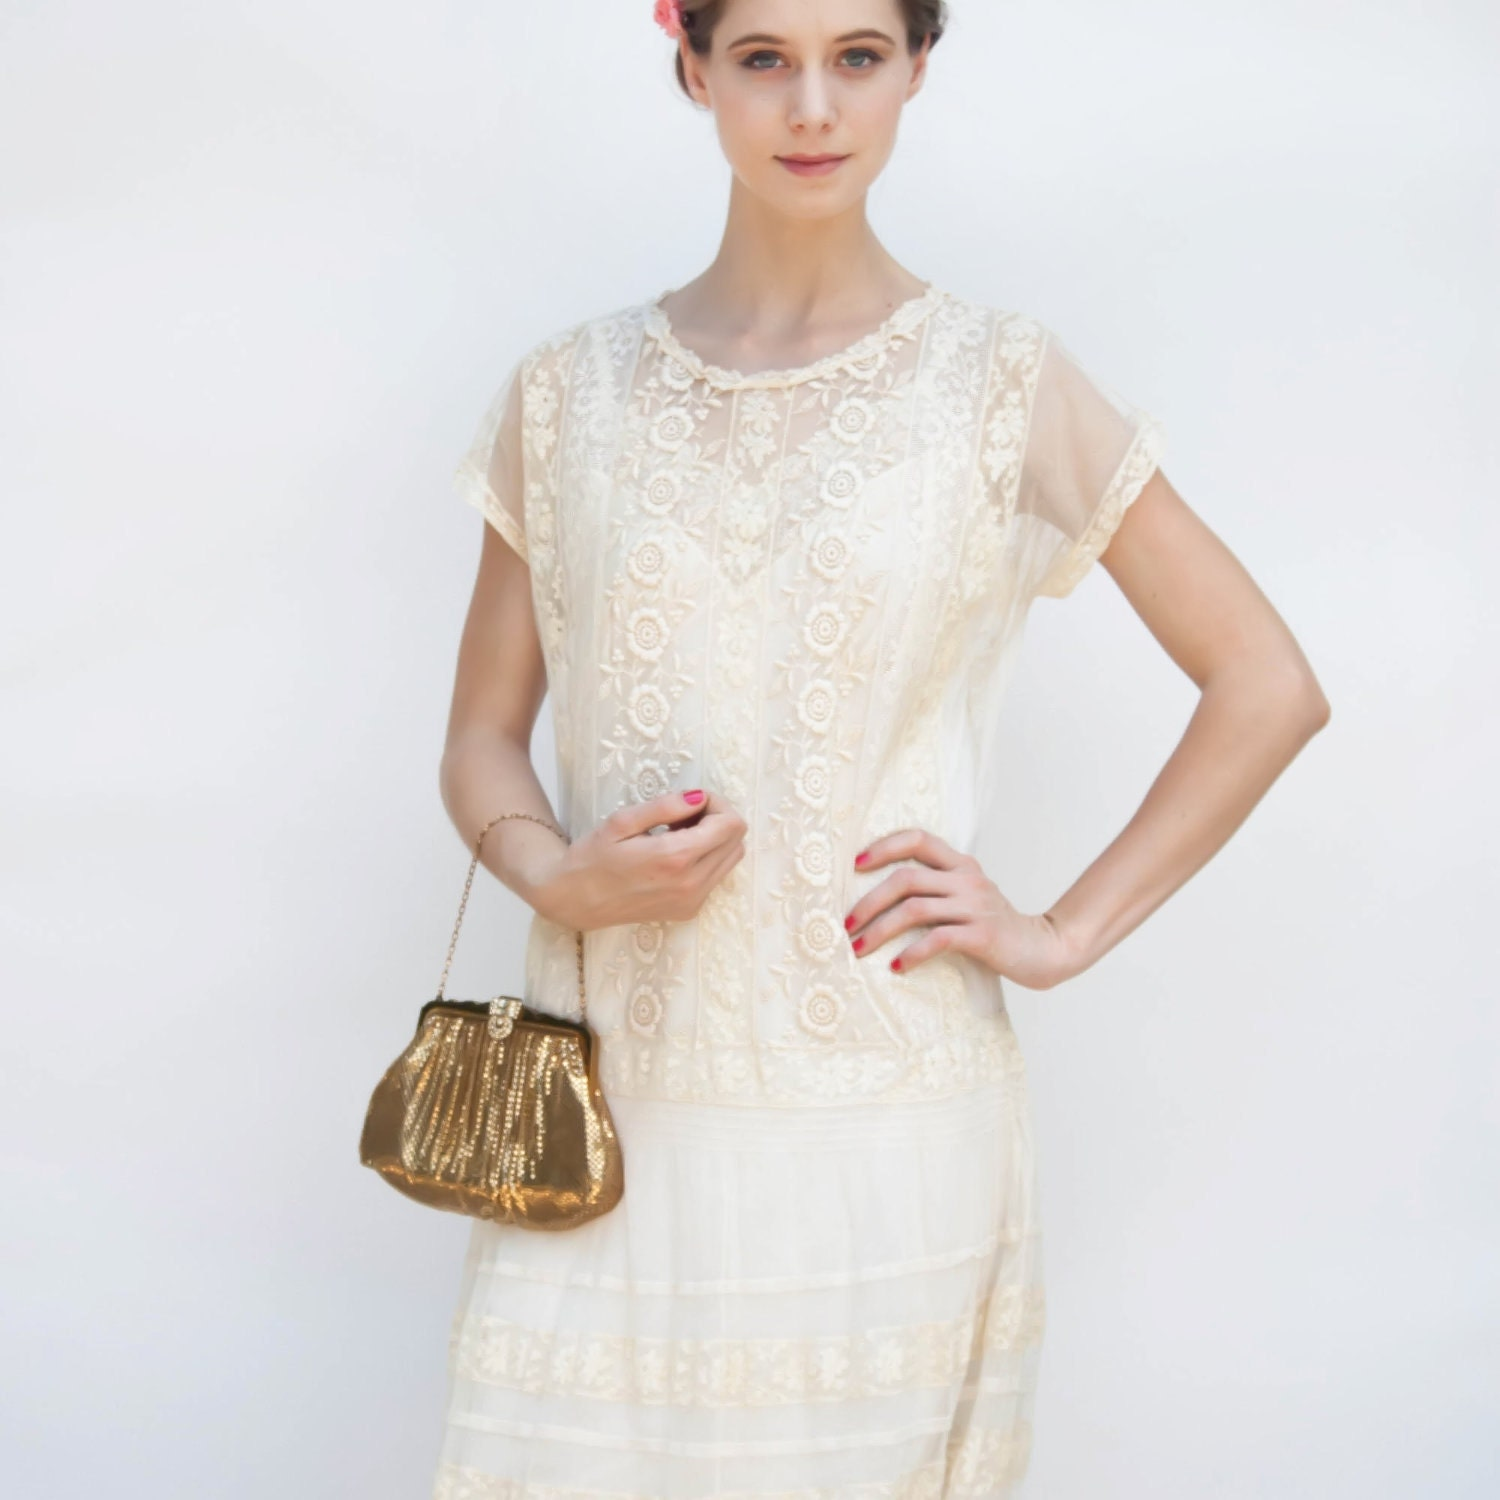 Vintage 1920s wedding dress great gatsby flapper ecru lace for Vintage wedding dresses 1920s